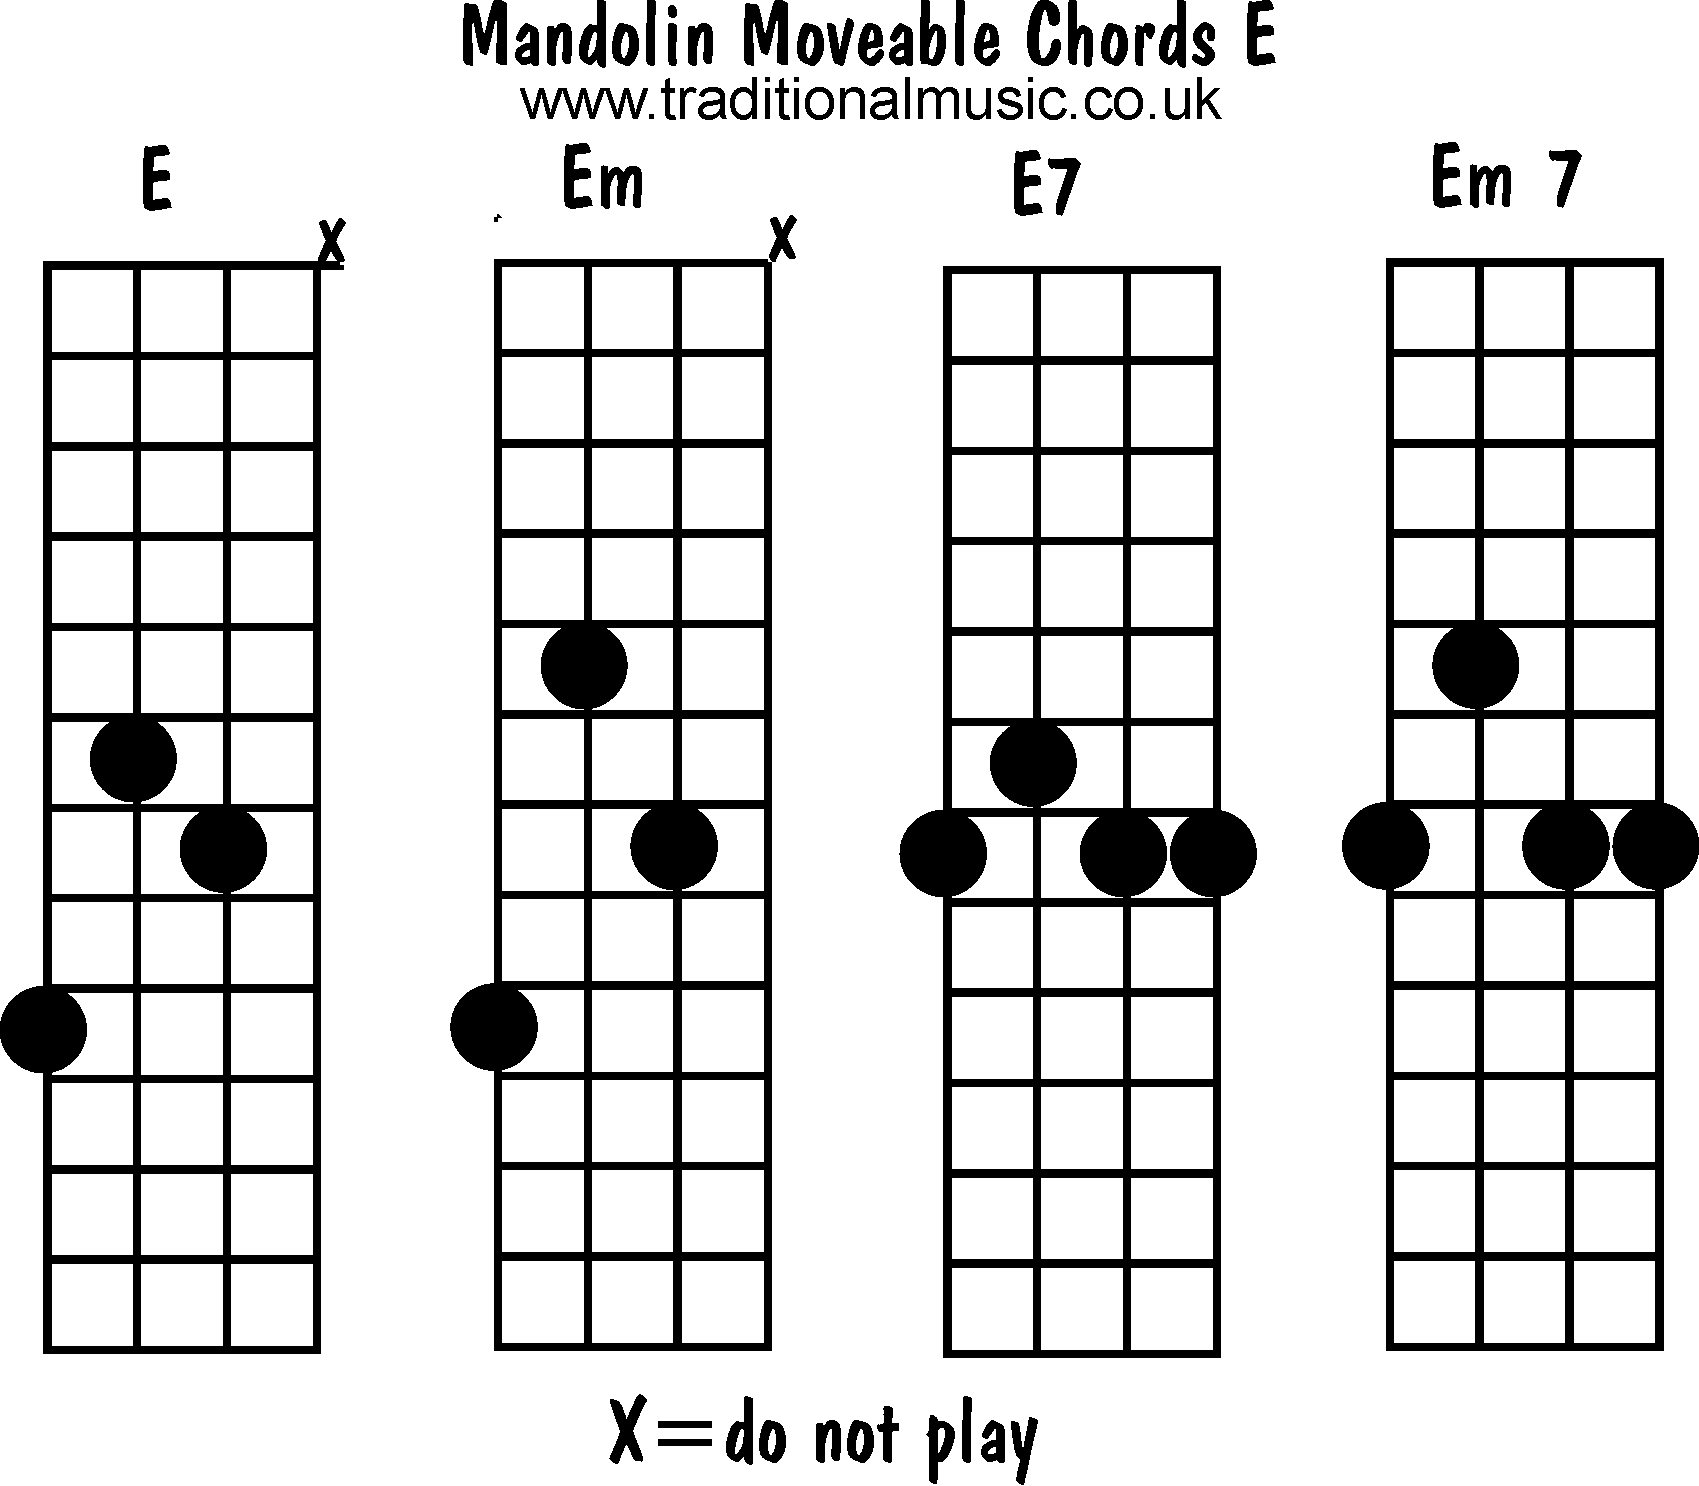 Mandolin chords moveable - E, Em, E7, Em7